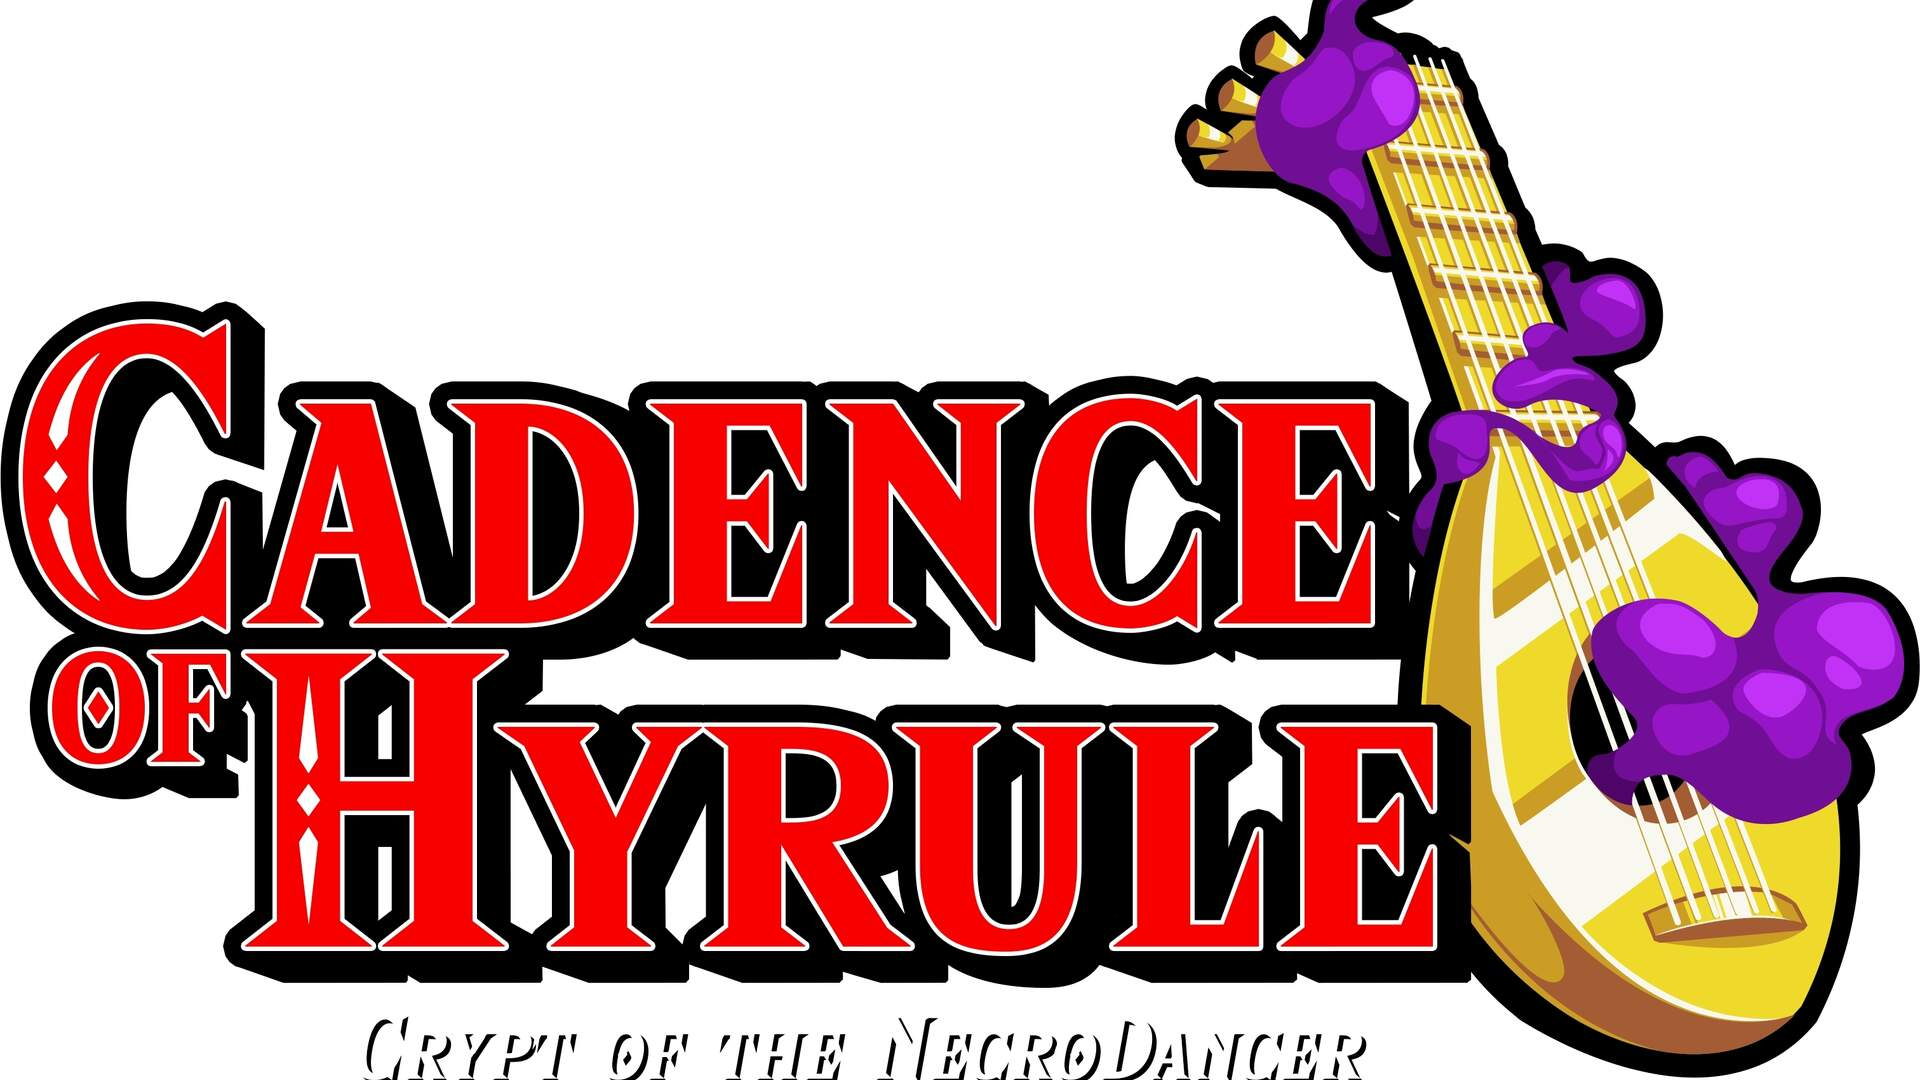 Legend of Zelda and Crypt of the Necrodancer Make Beautiful Music Together with Cadence of Hyrule for the Switch